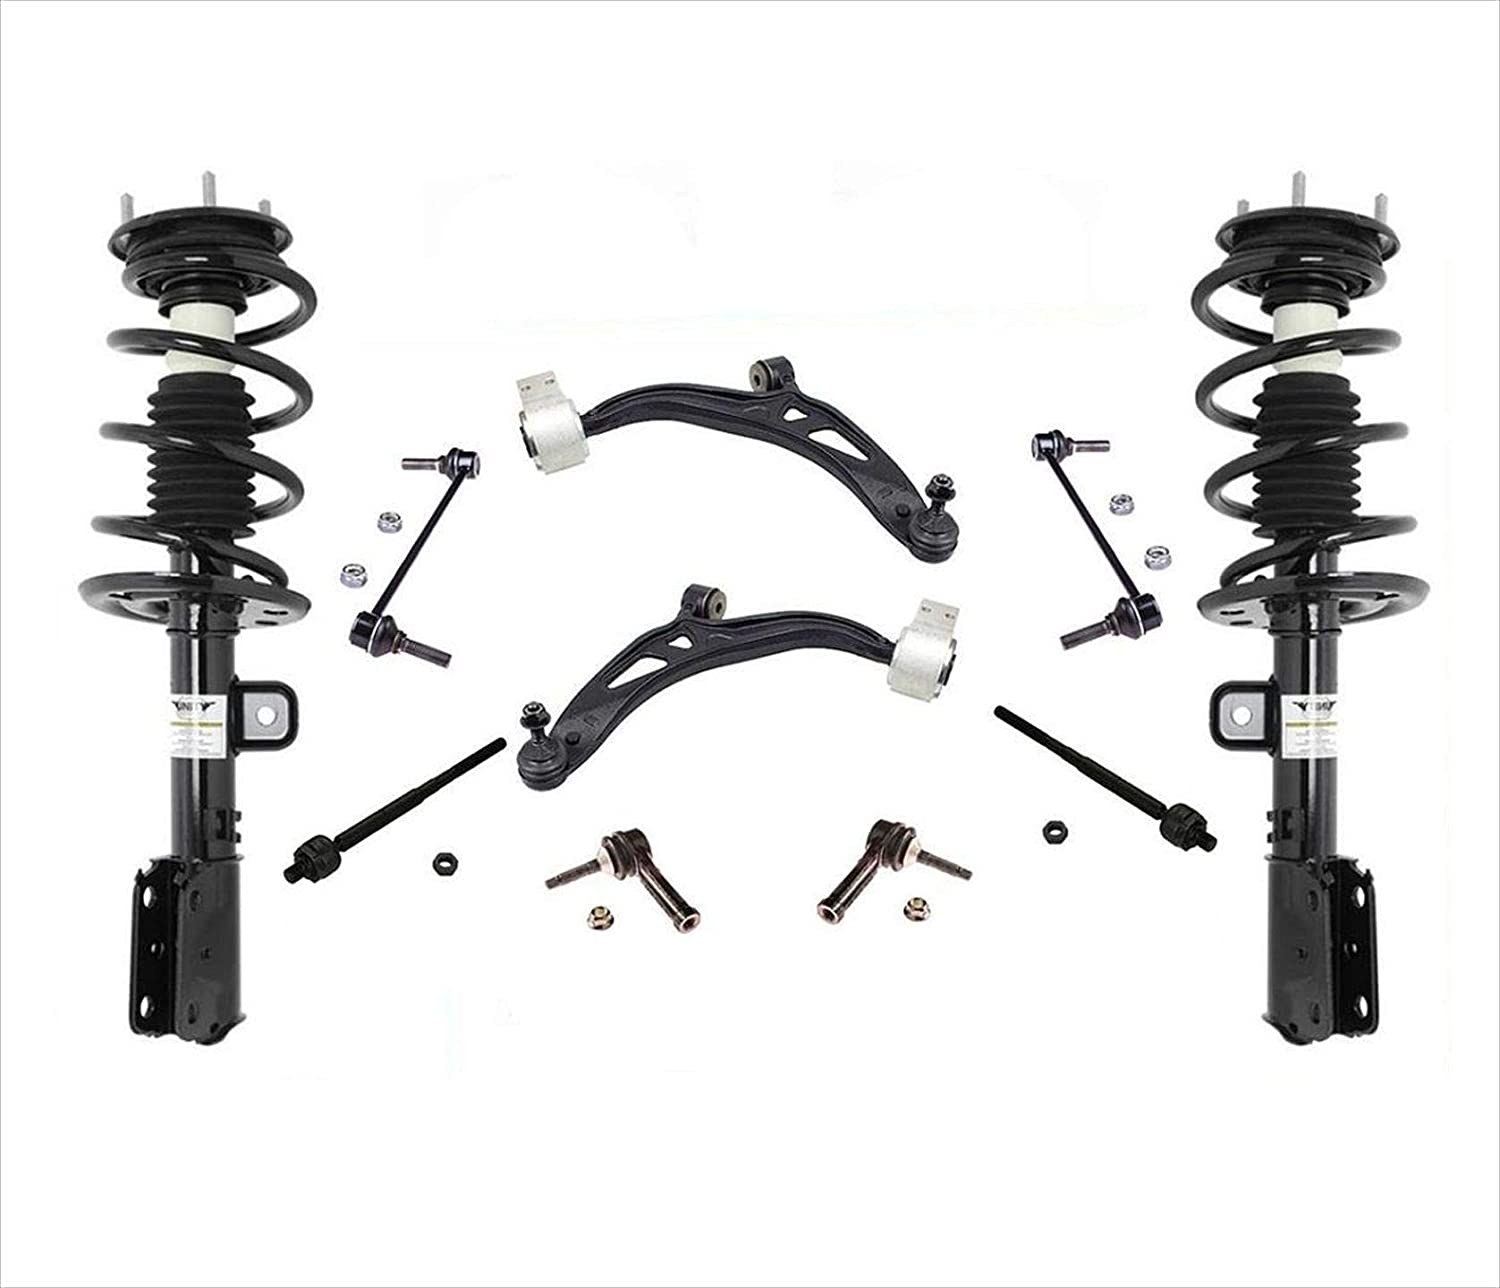 Complete Struts Control Seasonal Sale price Wrap Introduction Arms Rods Fits For Ford Drive All Wheel